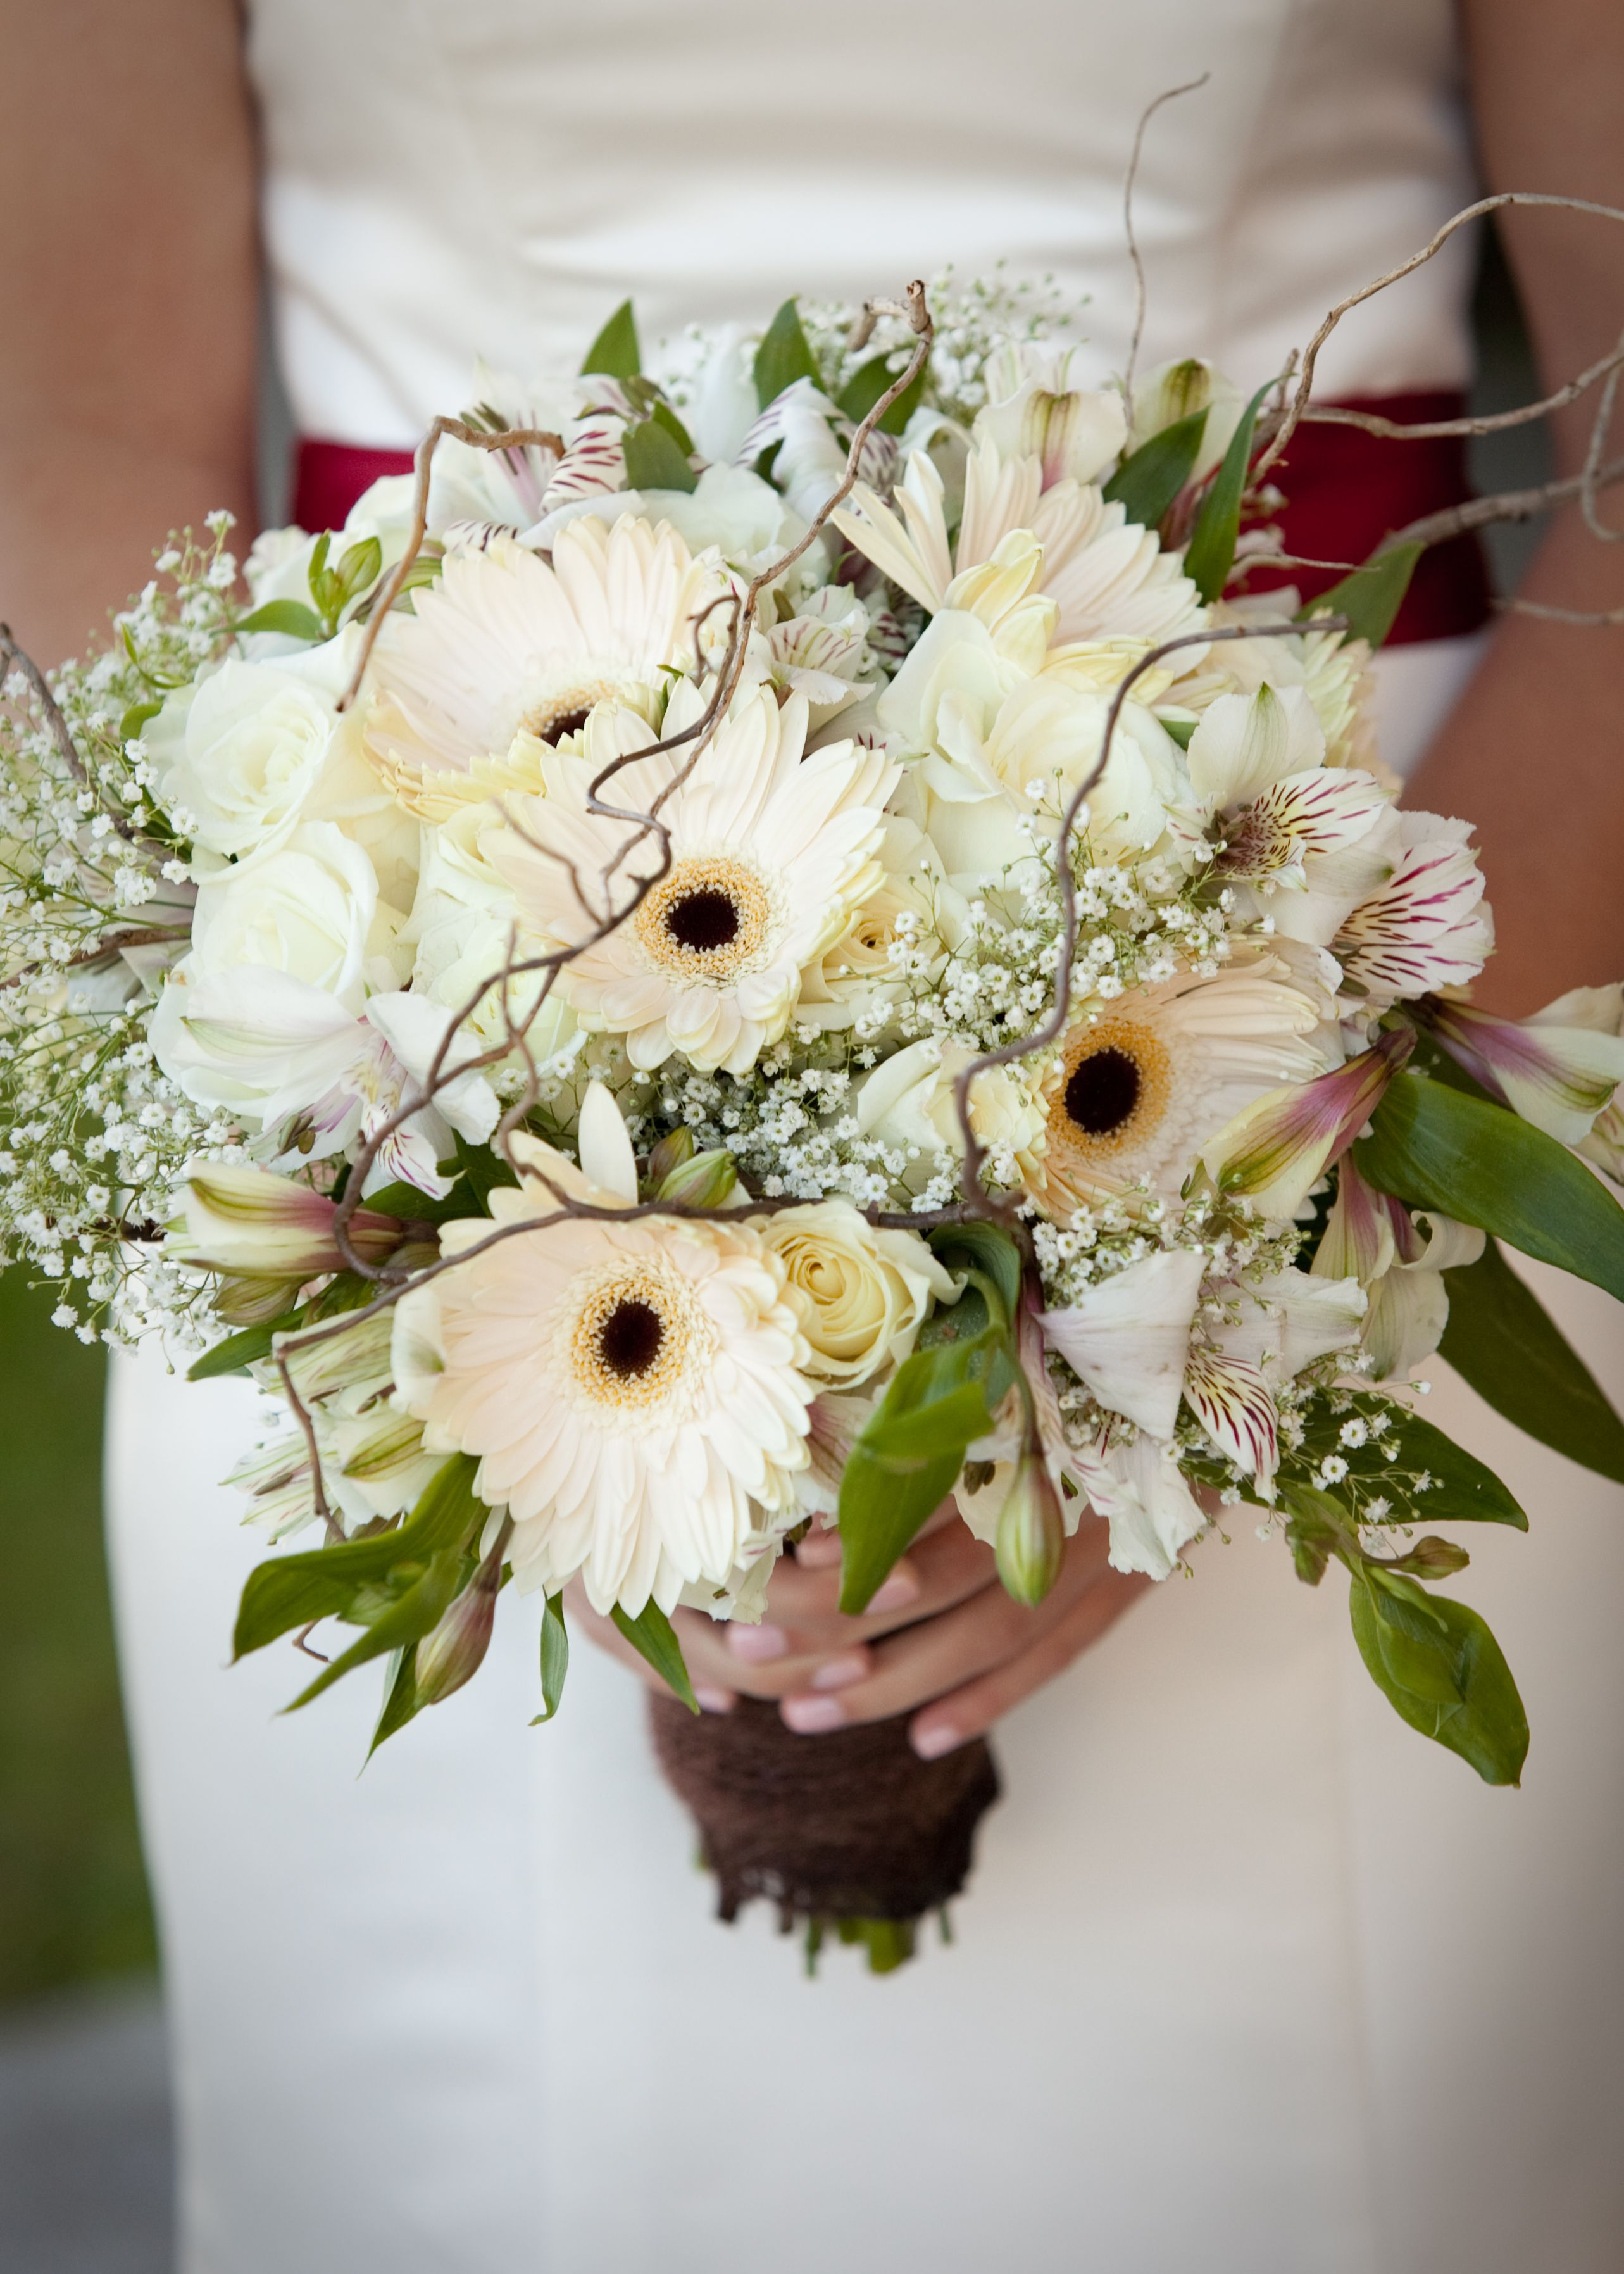 White Cream Bride Bouquet With Roses Alstroemeria Gerbera